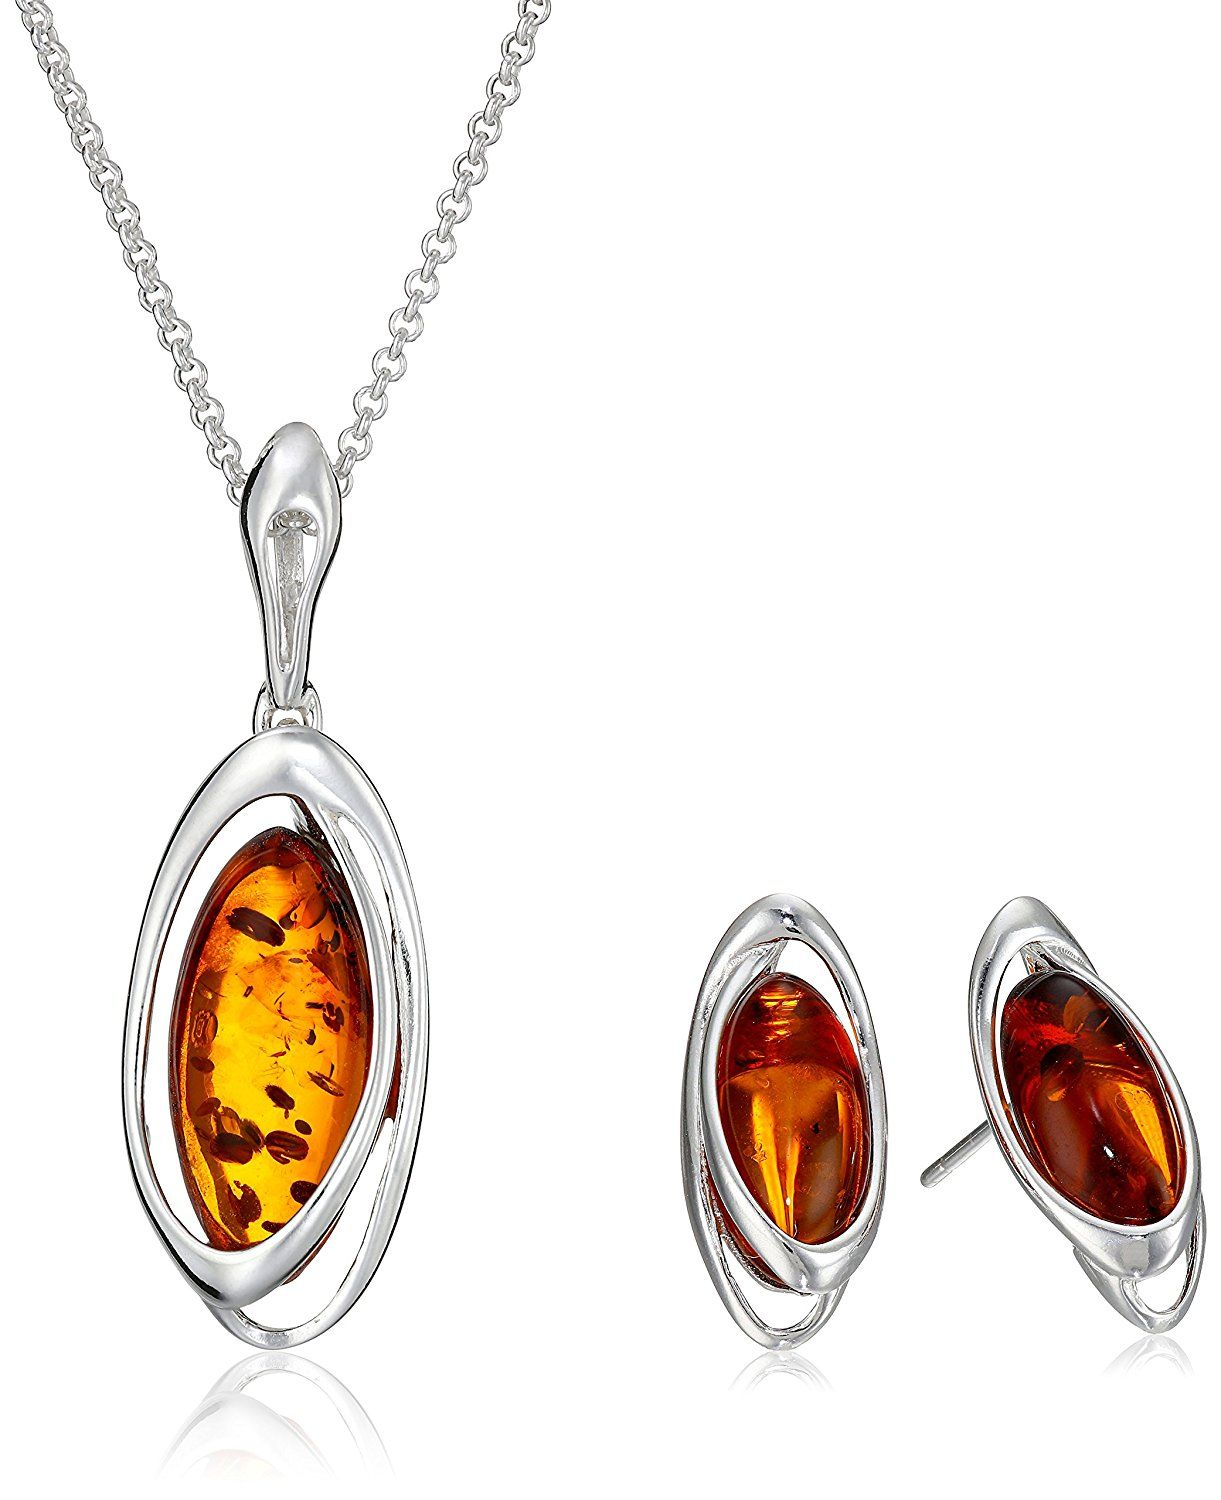 Sterling silver amber oval stud earrings and chain pendant necklace